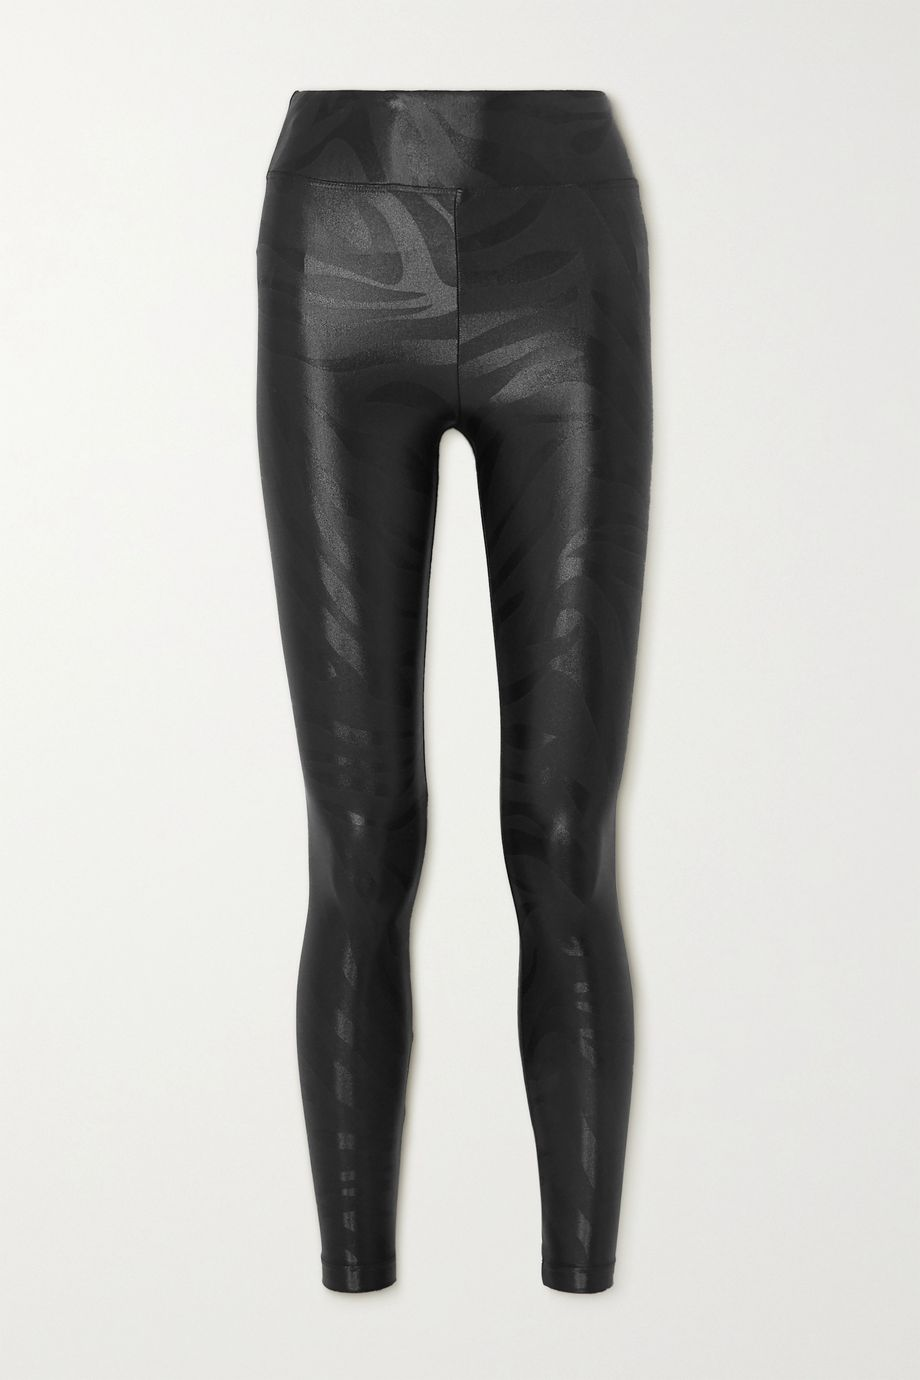 Koral Lustrous bedruckte Stretch-Leggings